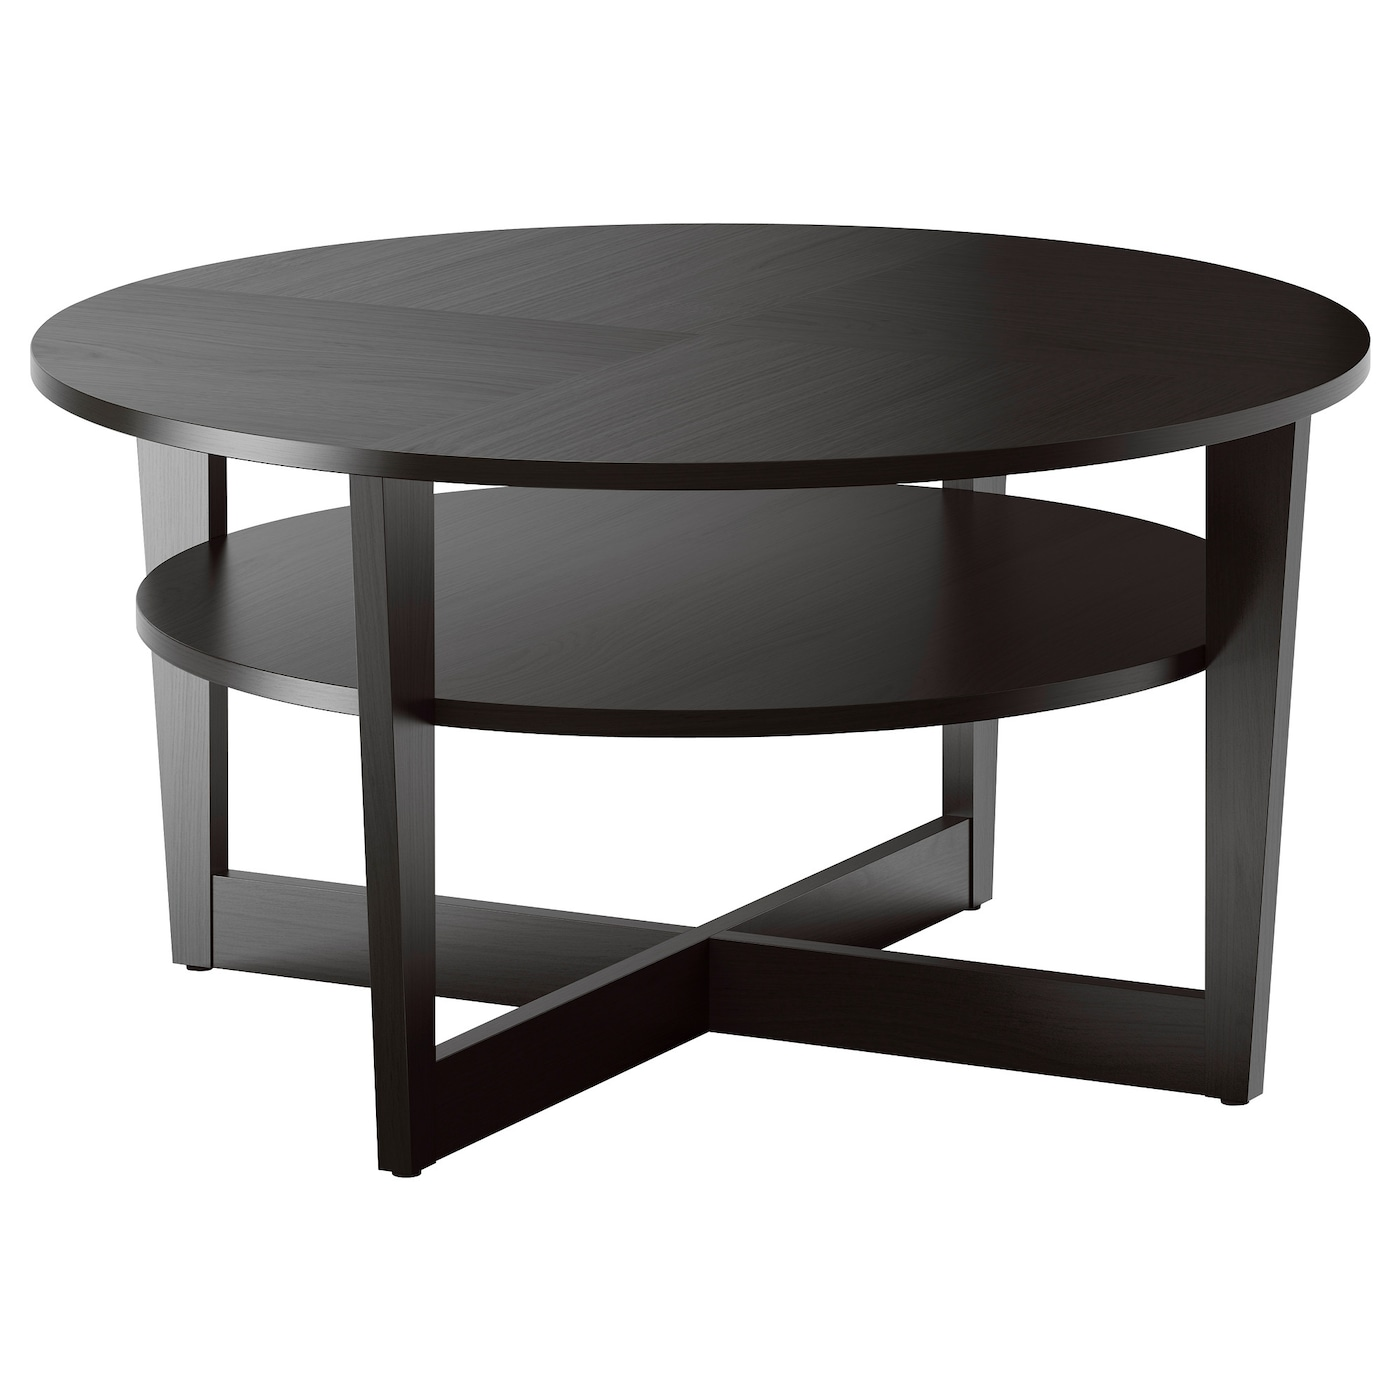 Vejmon coffee table black brown 90 cm ikea for Base de table ikea